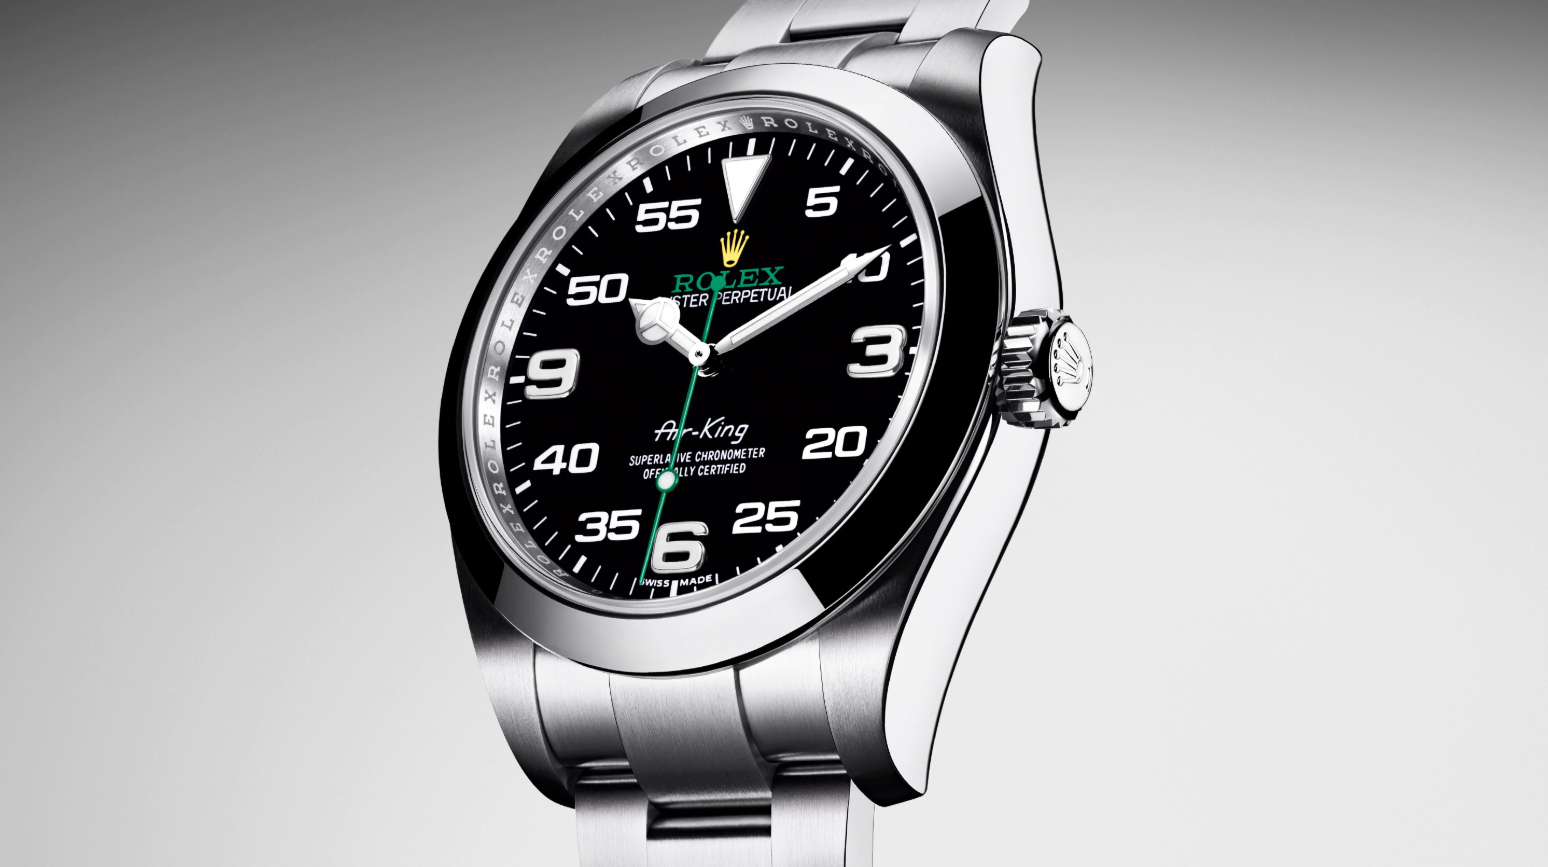 Rolex Air King: More Than Just an Entry-Level Rolex